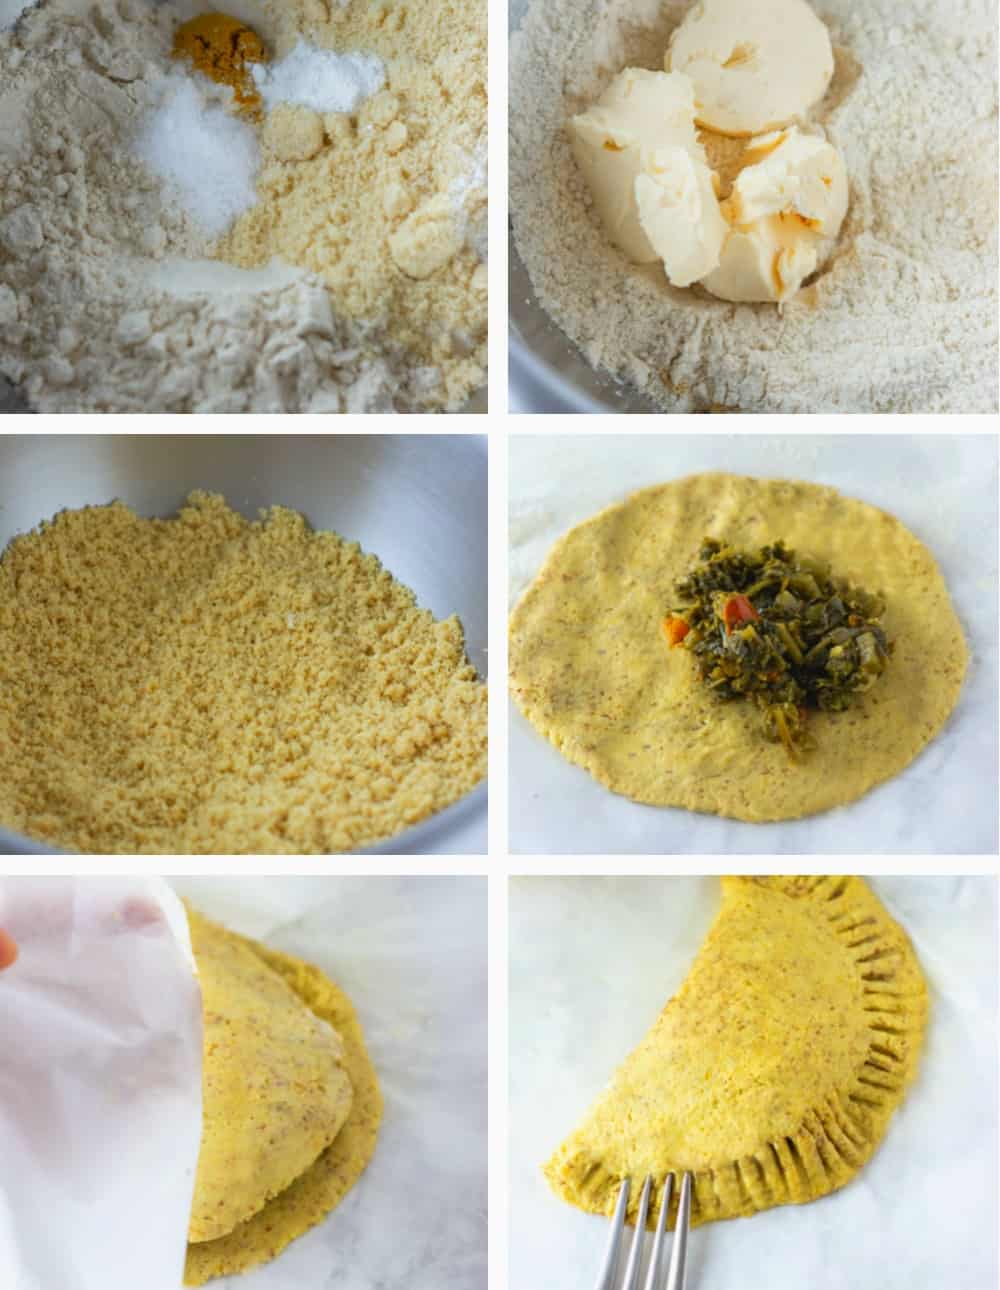 Step by Step collage of making Jamaican callaloo patties, from ingredients in a bowl, butter added, filling added to folding dough and crimping with fork. Then finished patty broken in half showing filling.